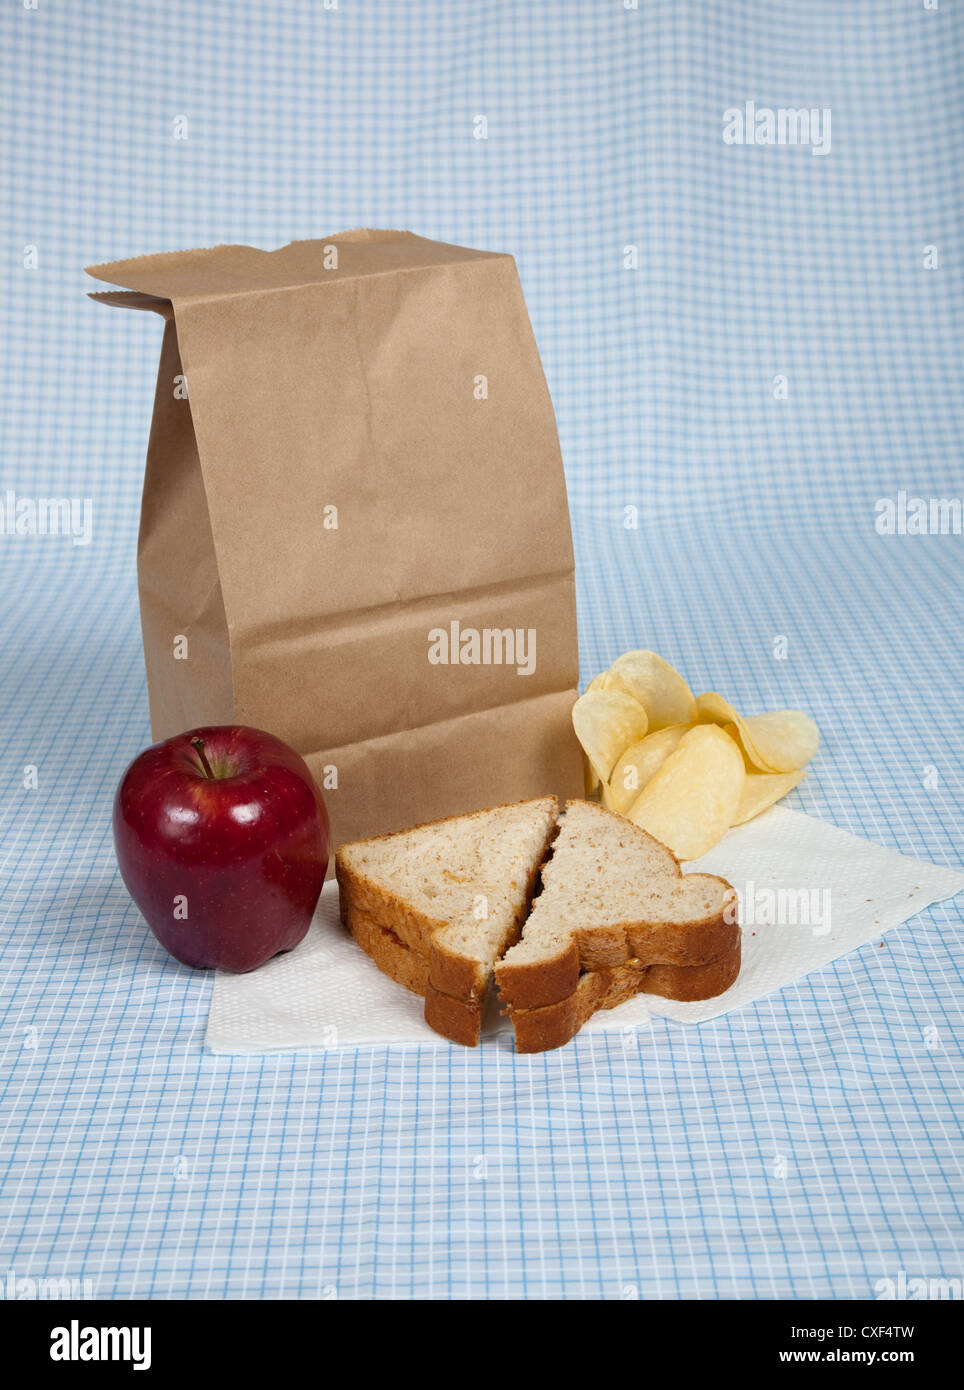 Sack lunch with apple, sandwich and chips on a blue gingham tablecloth - Stock Image